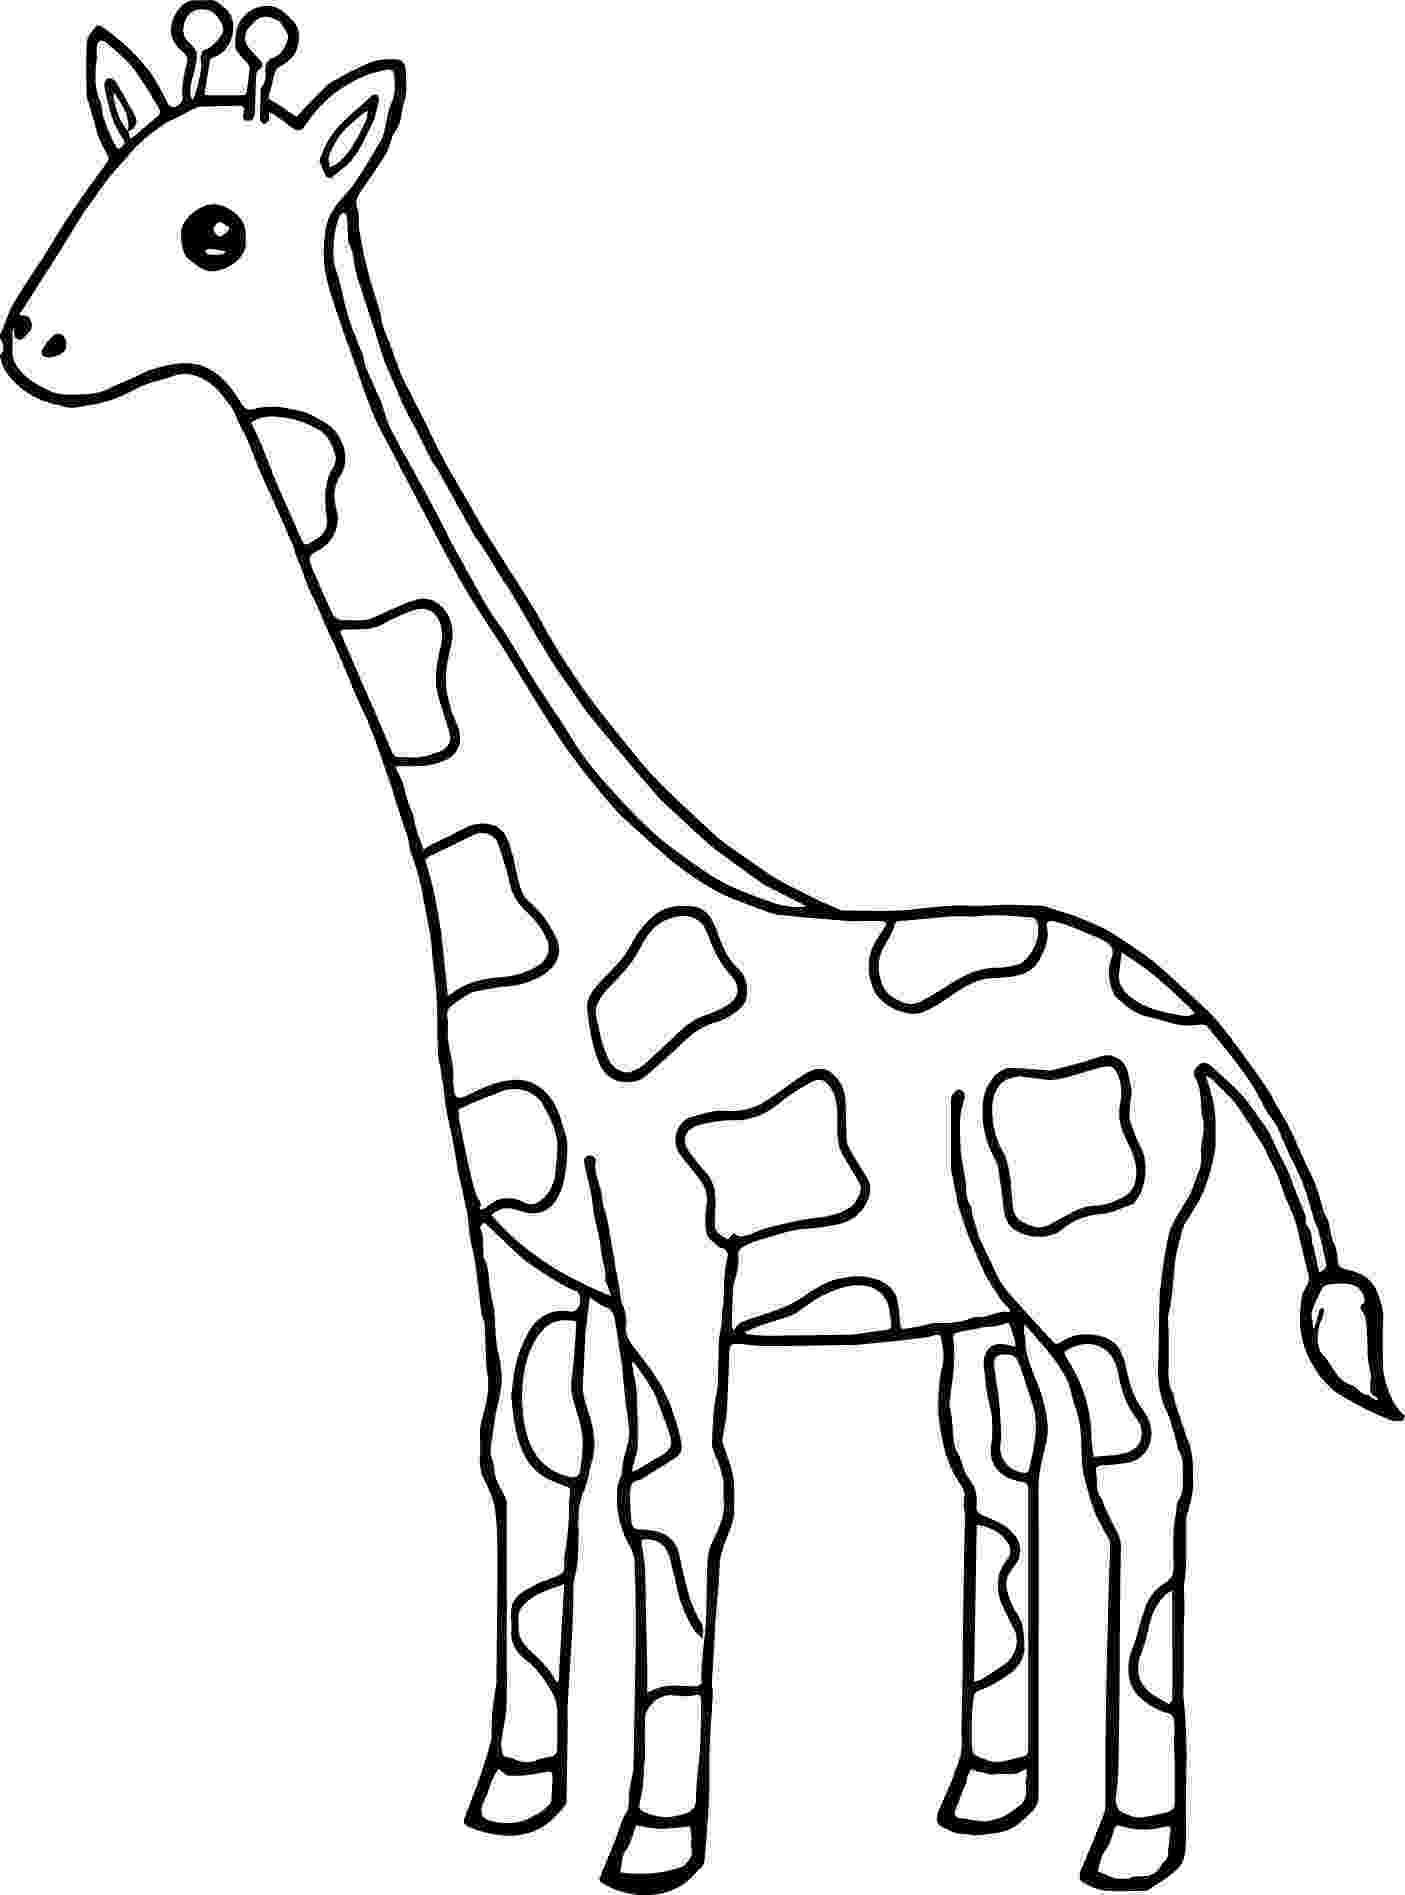 giraffe coloring pages giraffe descprition and facts coloring giraffe pages